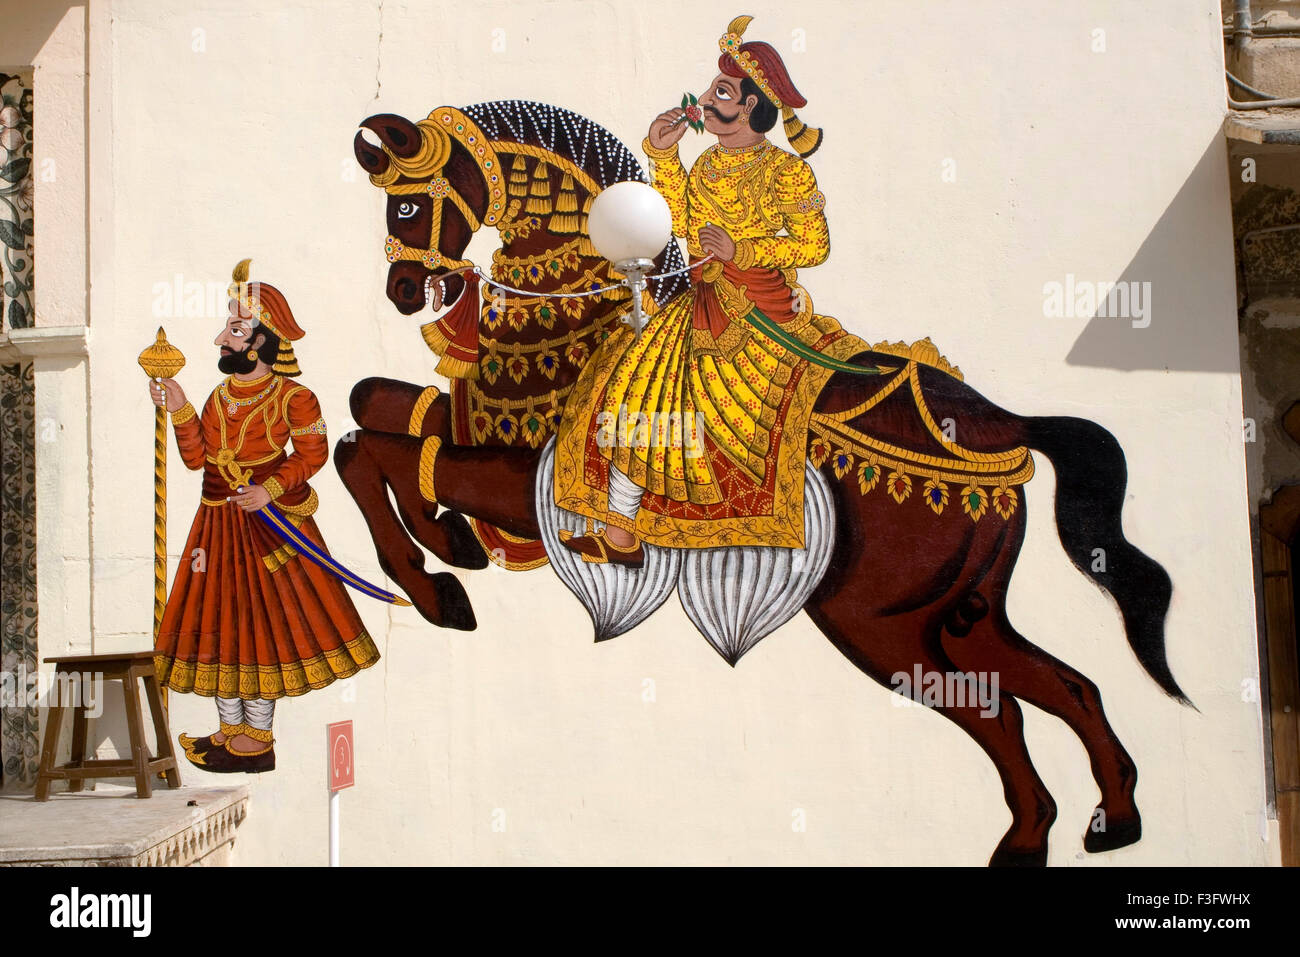 King On Horse High Resolution Stock Photography And Images Alamy